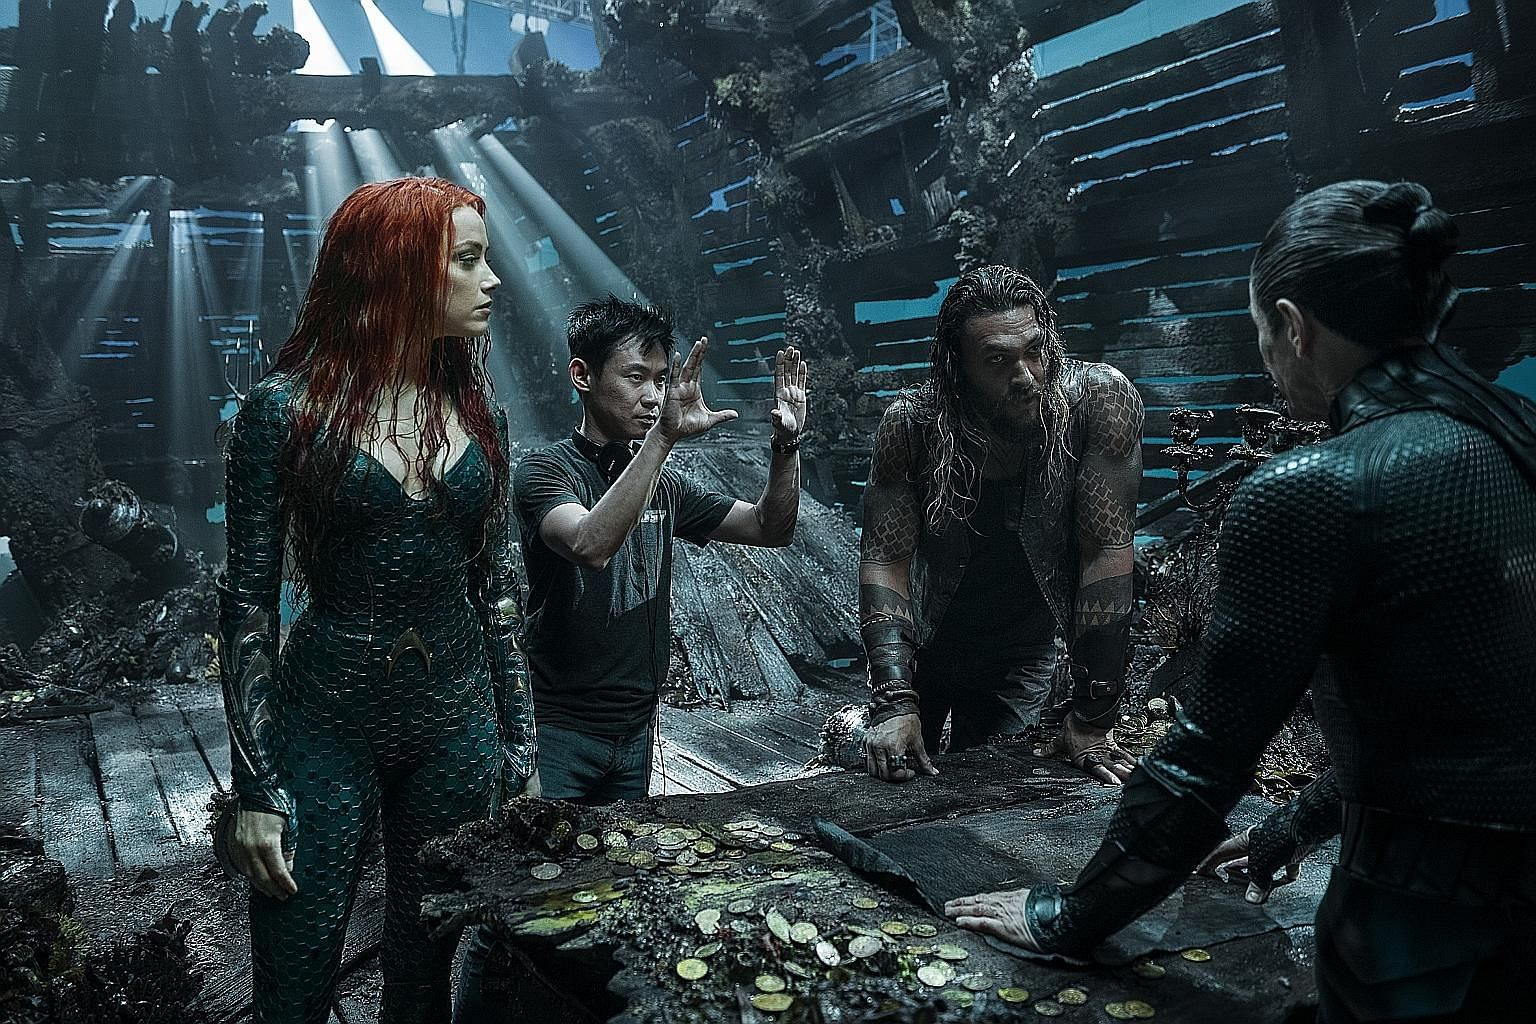 Aquaman director James Wan (second from left) on set with stars Amber Heard and Jason Momoa.